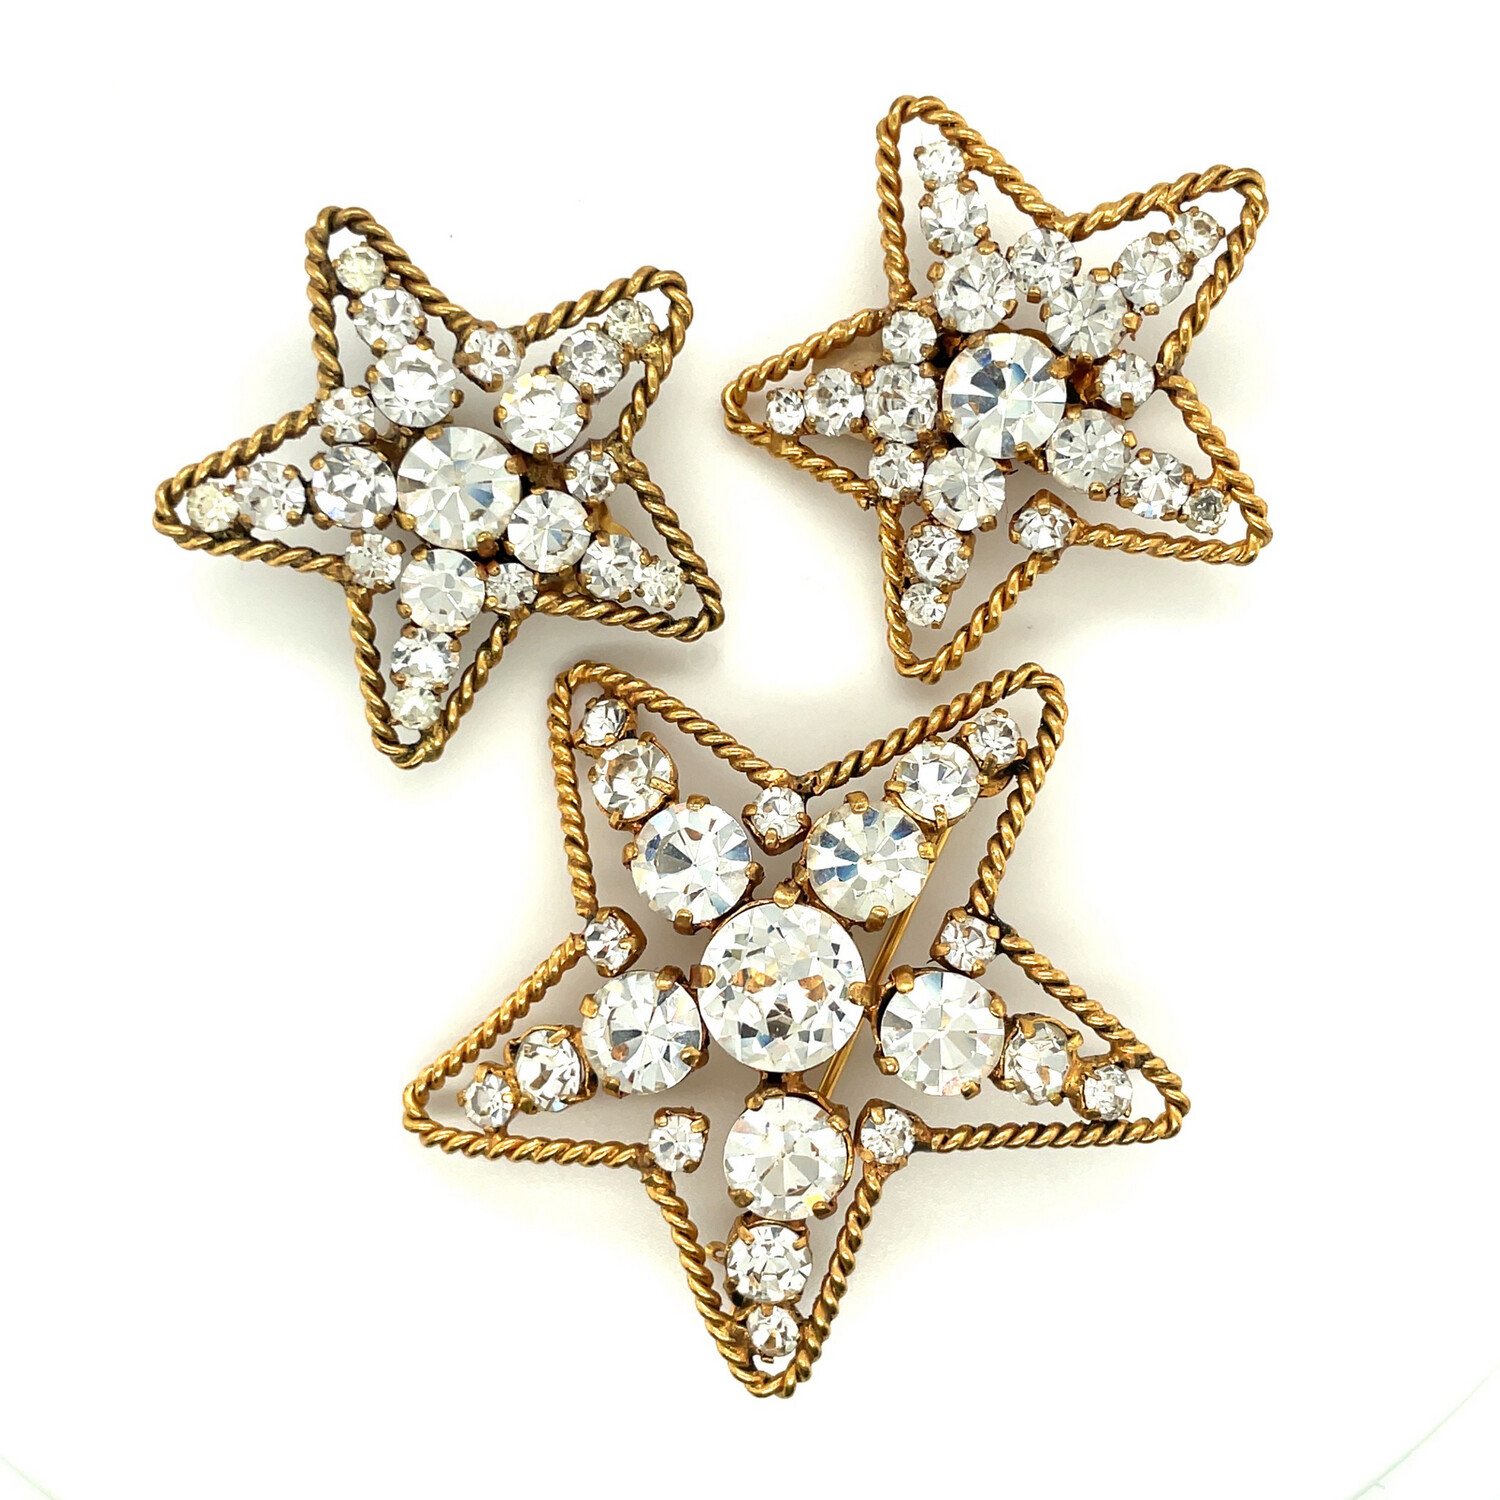 Vintage Collectible CHANEL Stars Set 1983 Brooch and Earrings